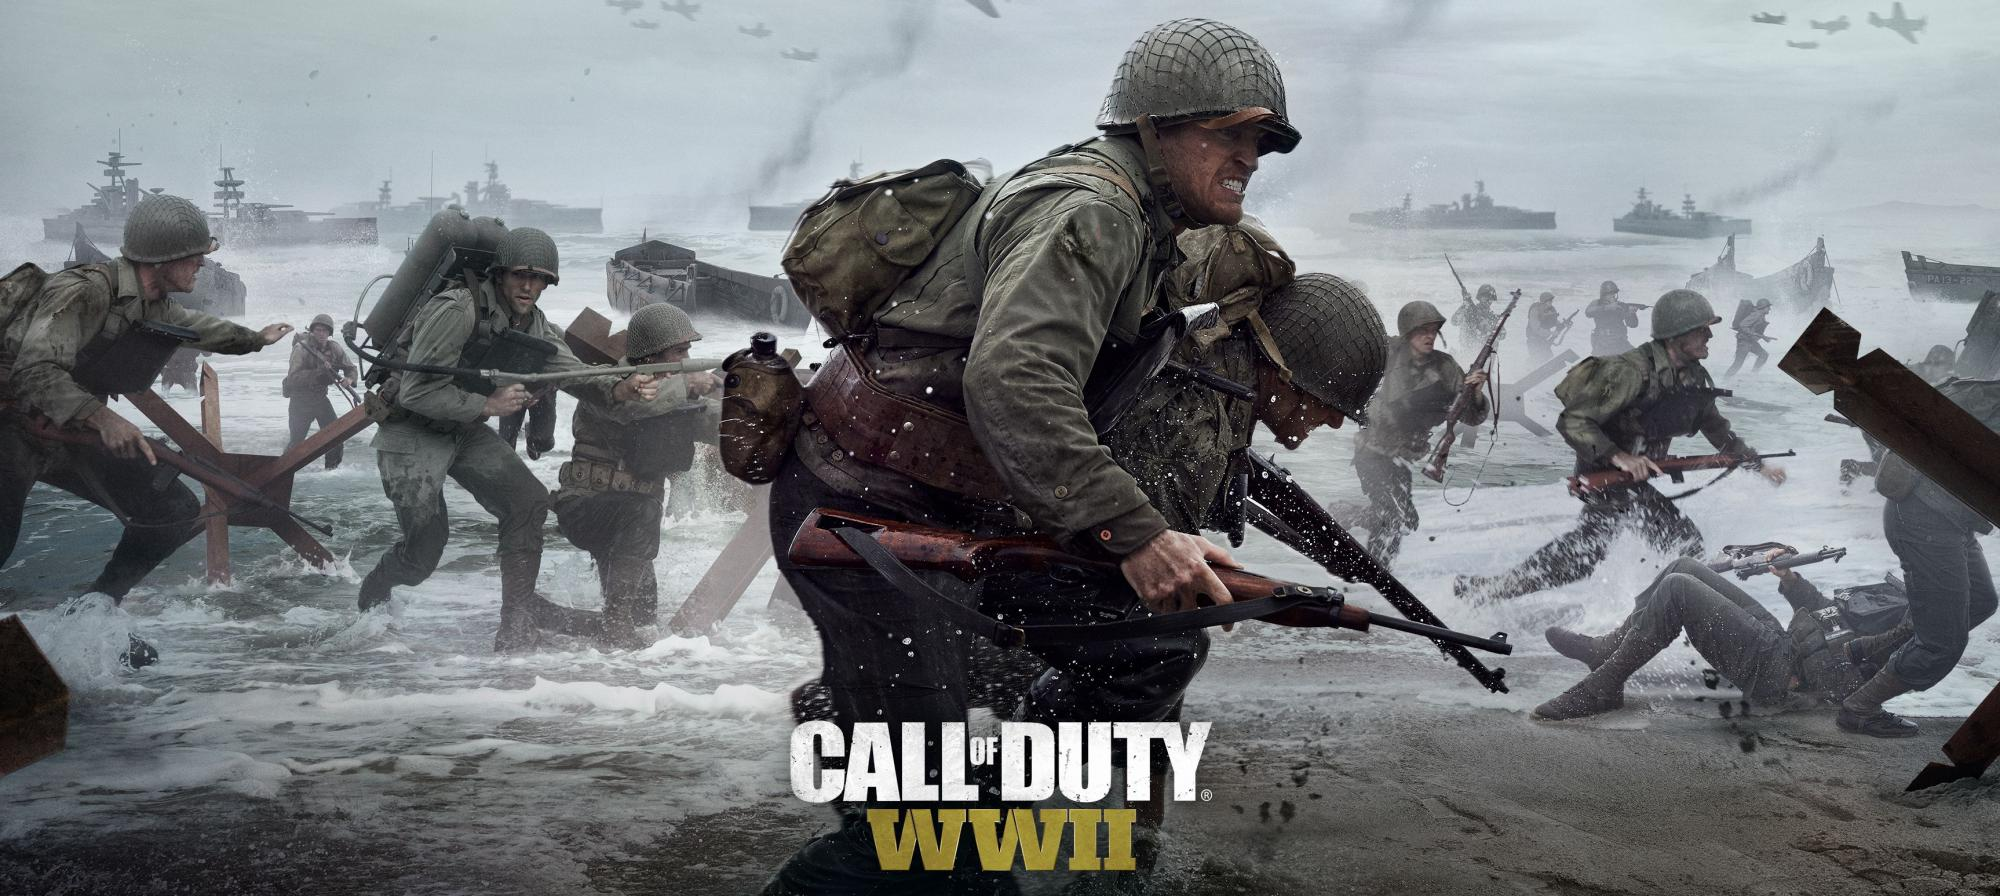 call of duty ww2 torrent crack